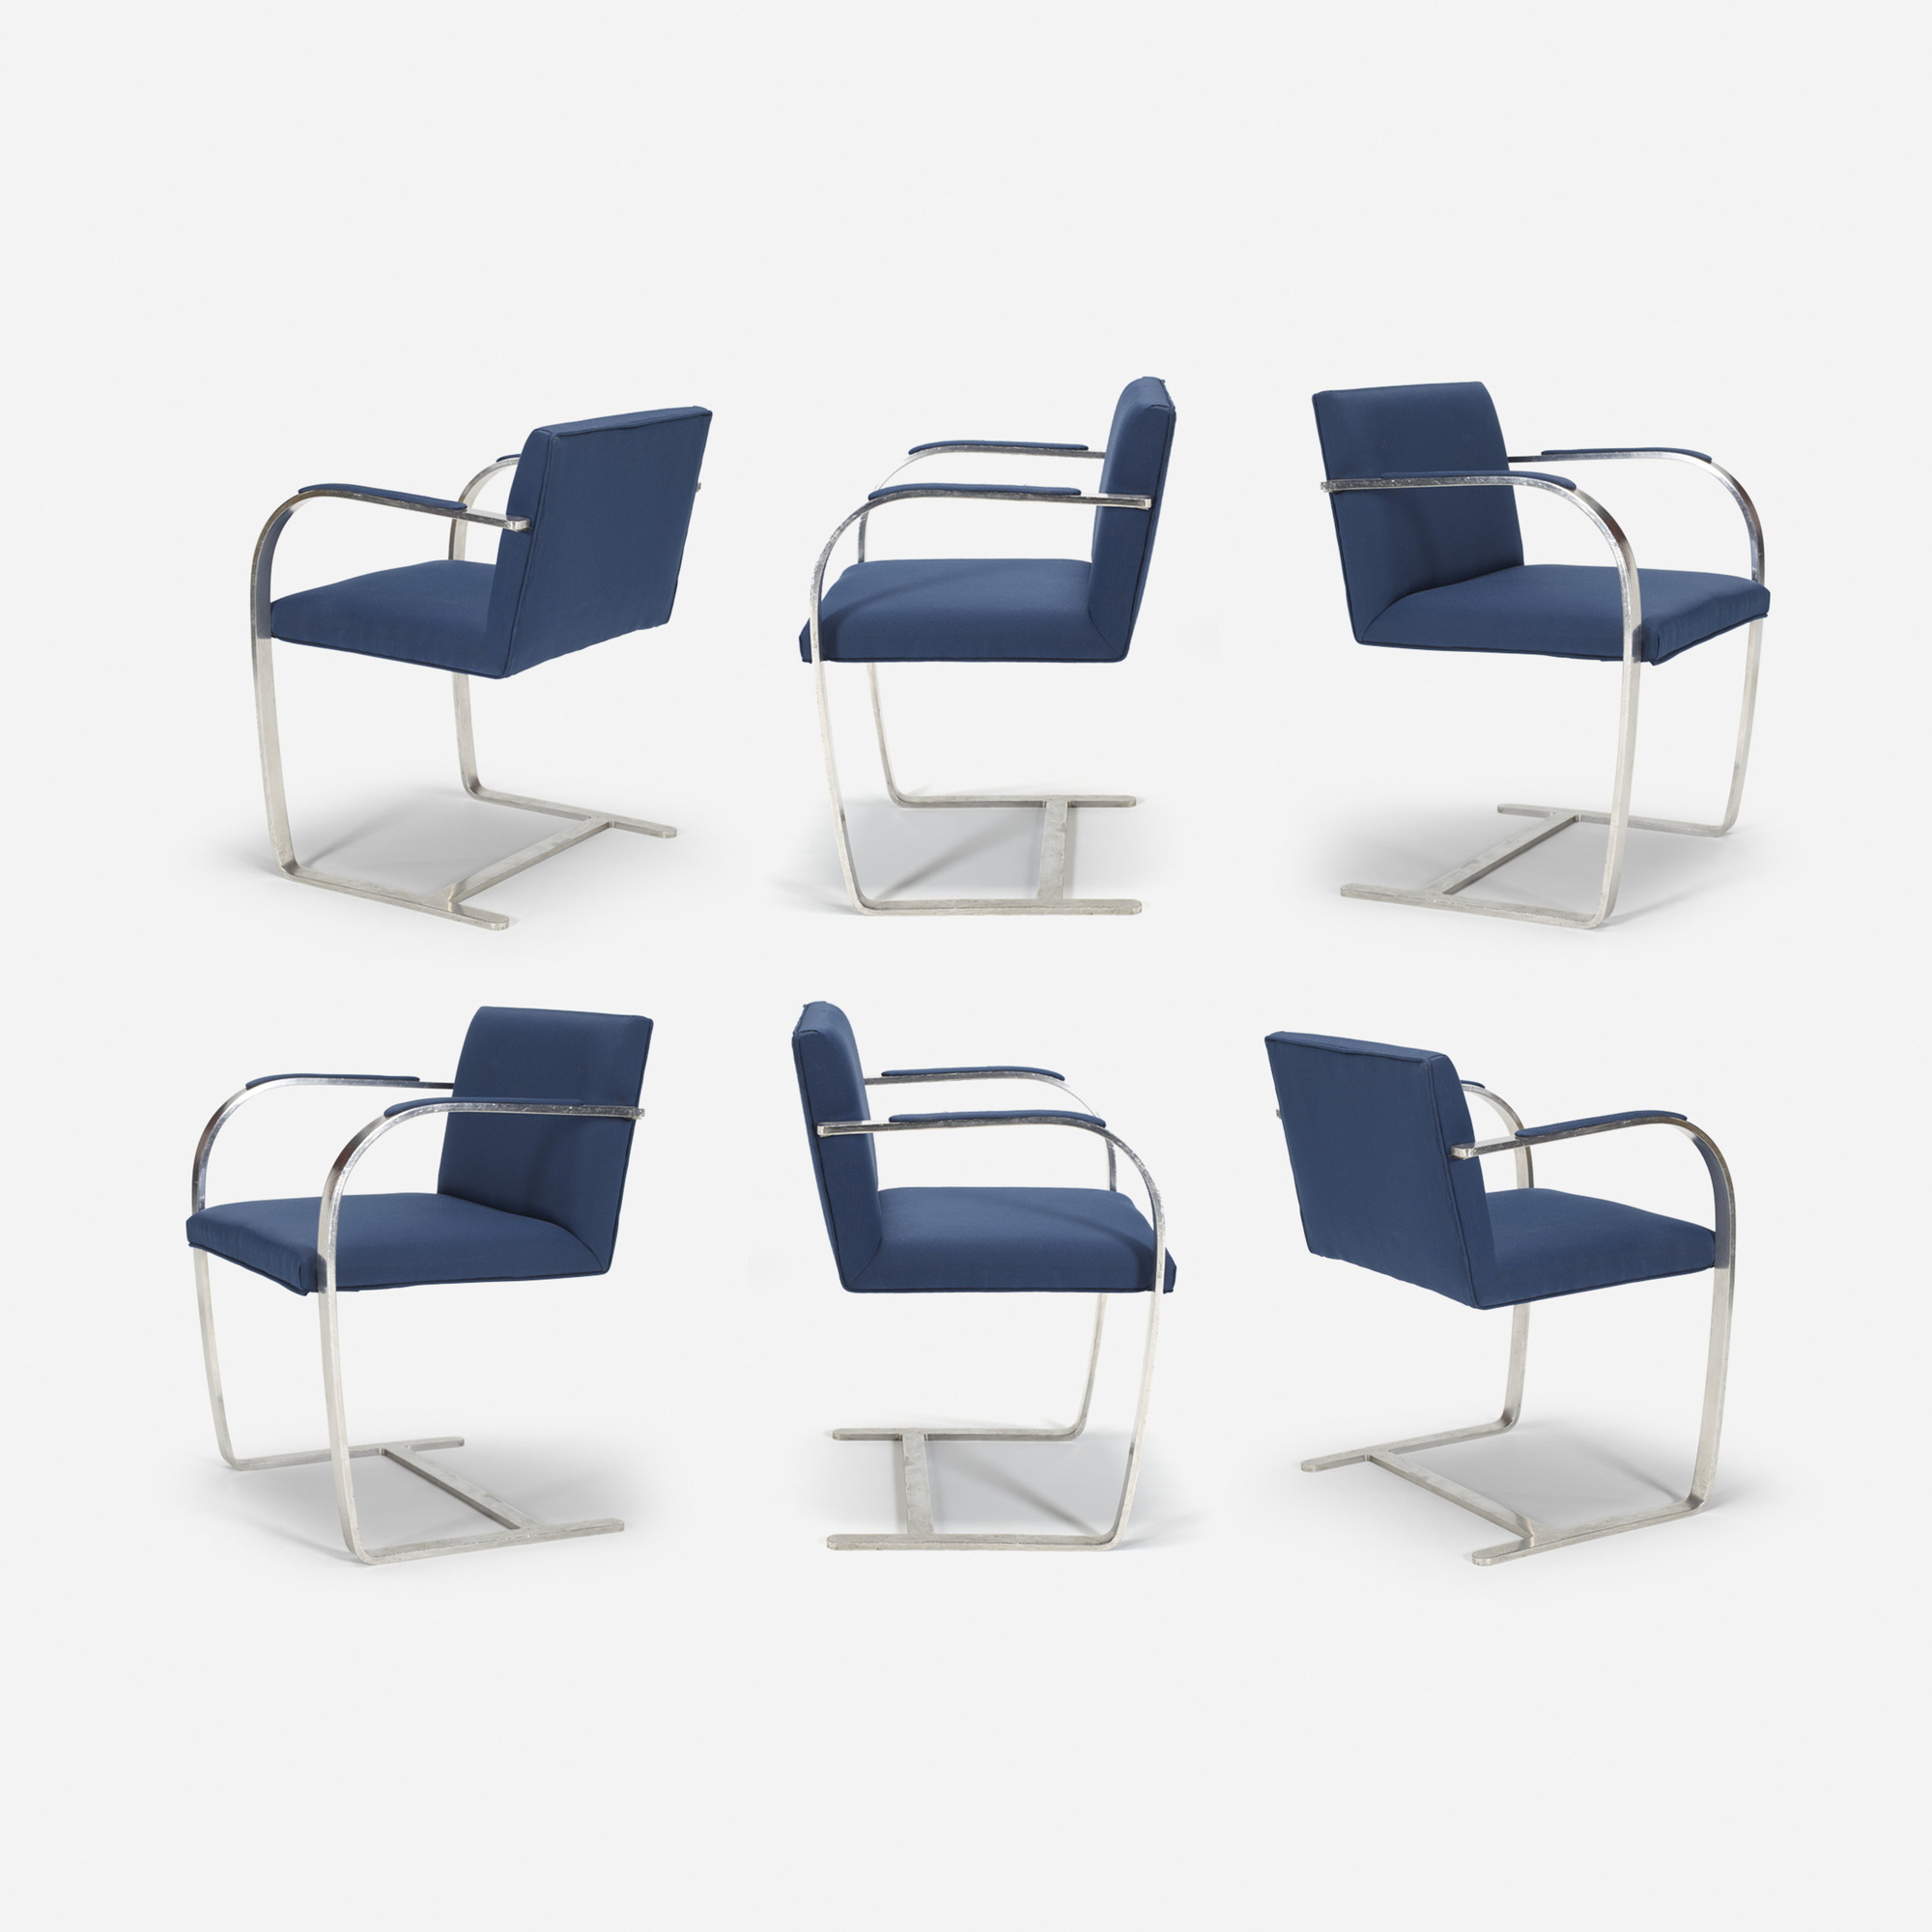 505: Ludwig Mies van der Rohe / Brno chairs from The Four Seasons, set of six (1 of 1)